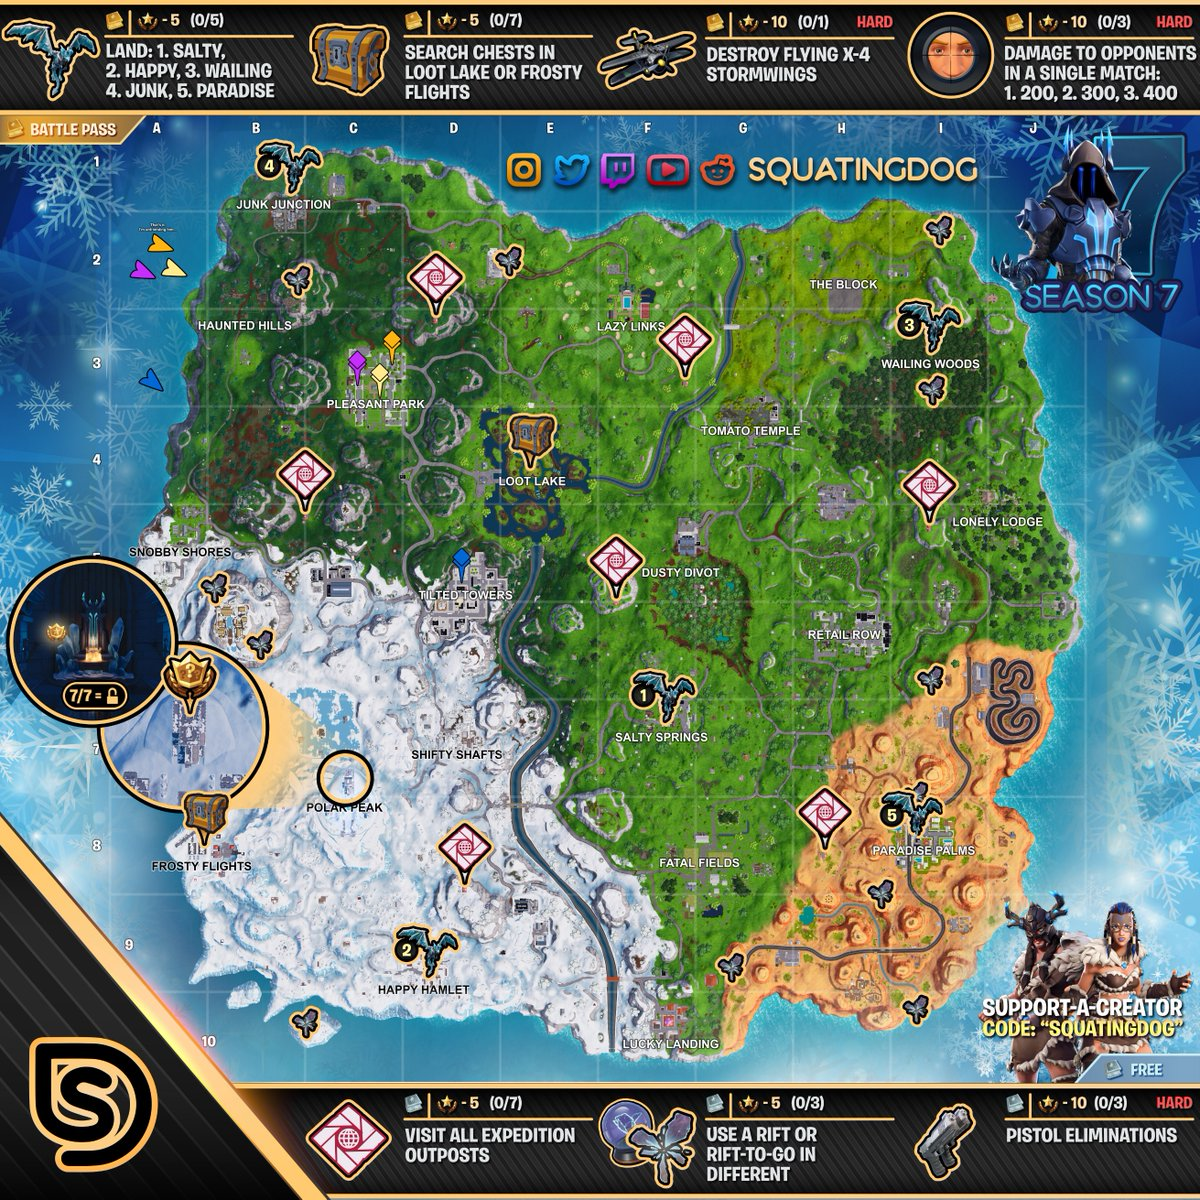 Fortnite: Expedition Outpost Locations Guide (Season 7, Week 7 Challenge)